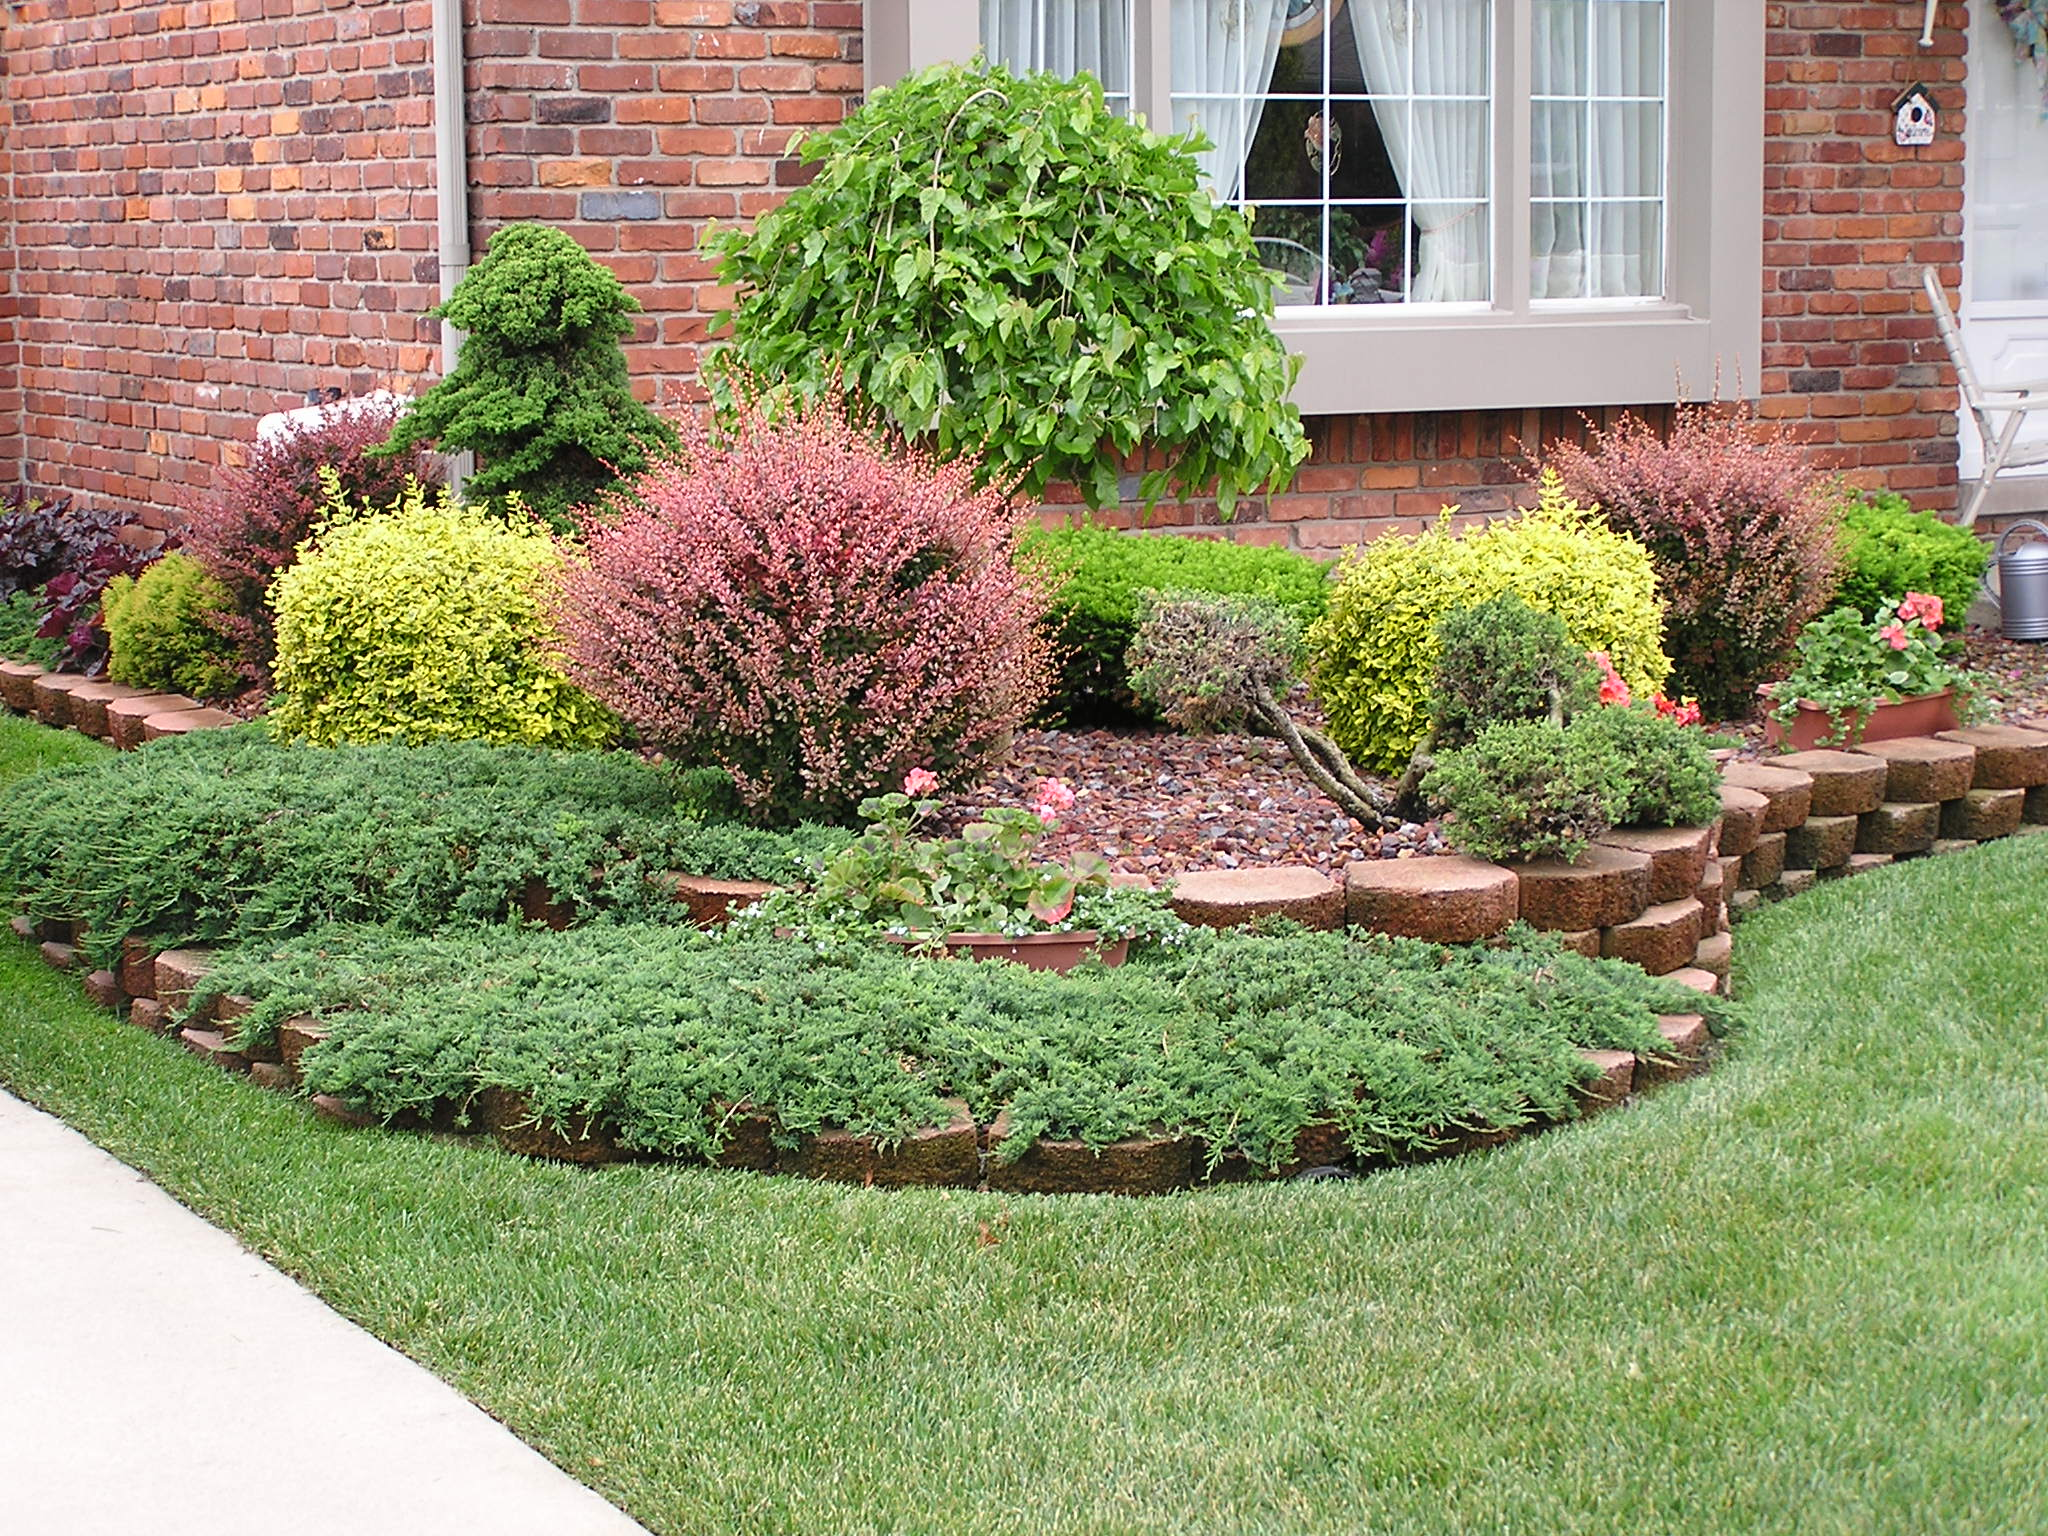 Front yard landscaping ideas for Lawn landscaping ideas